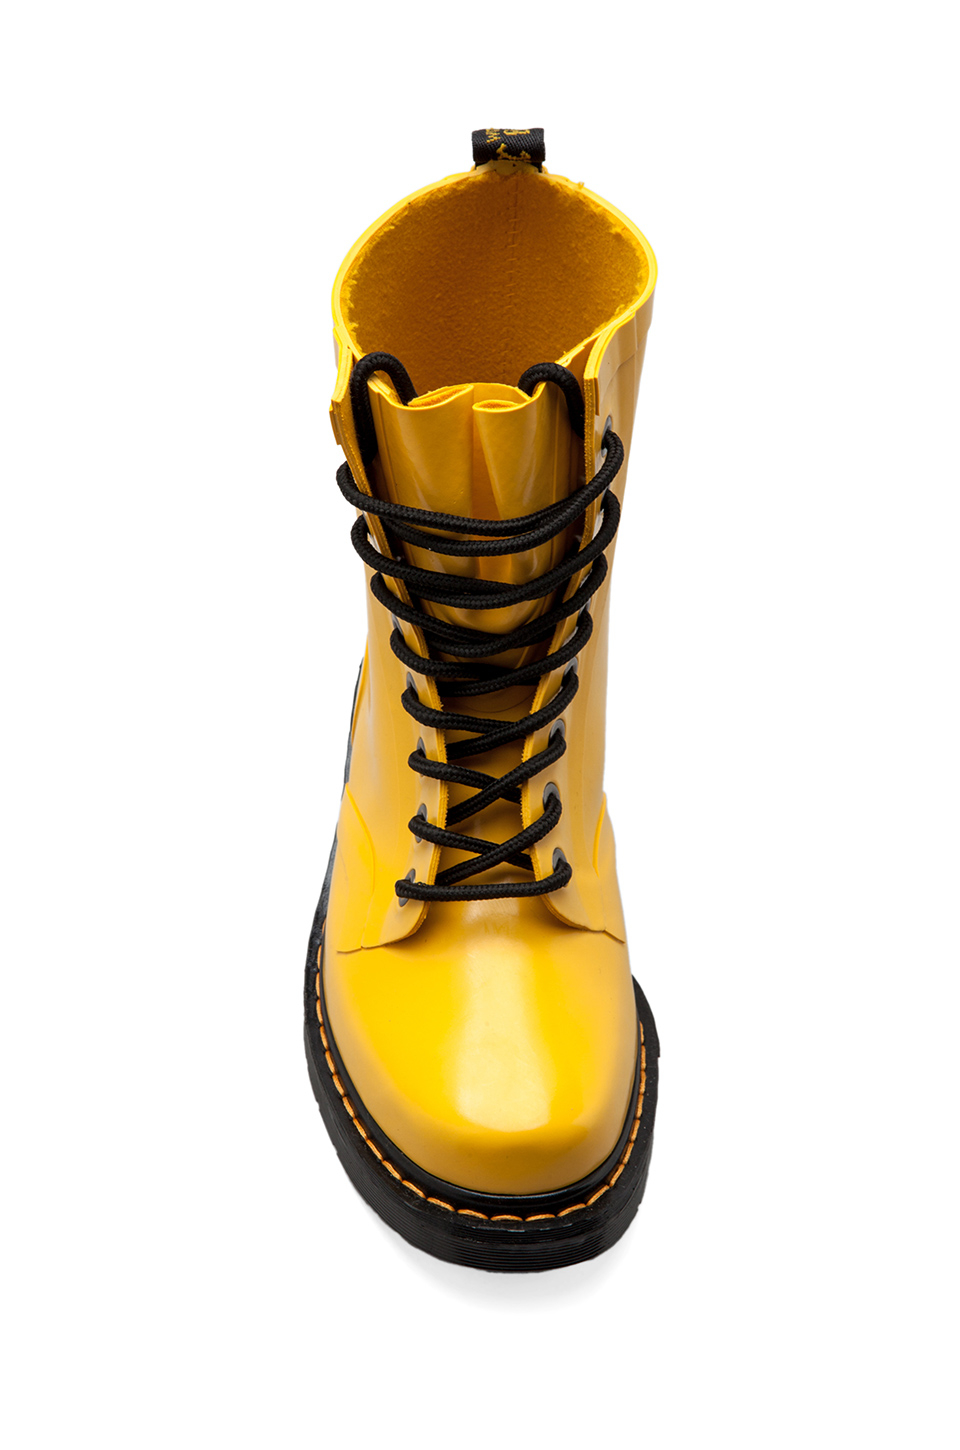 Dr. martens Drench 8eye Rain Boot in Yellow in Yellow   Lyst